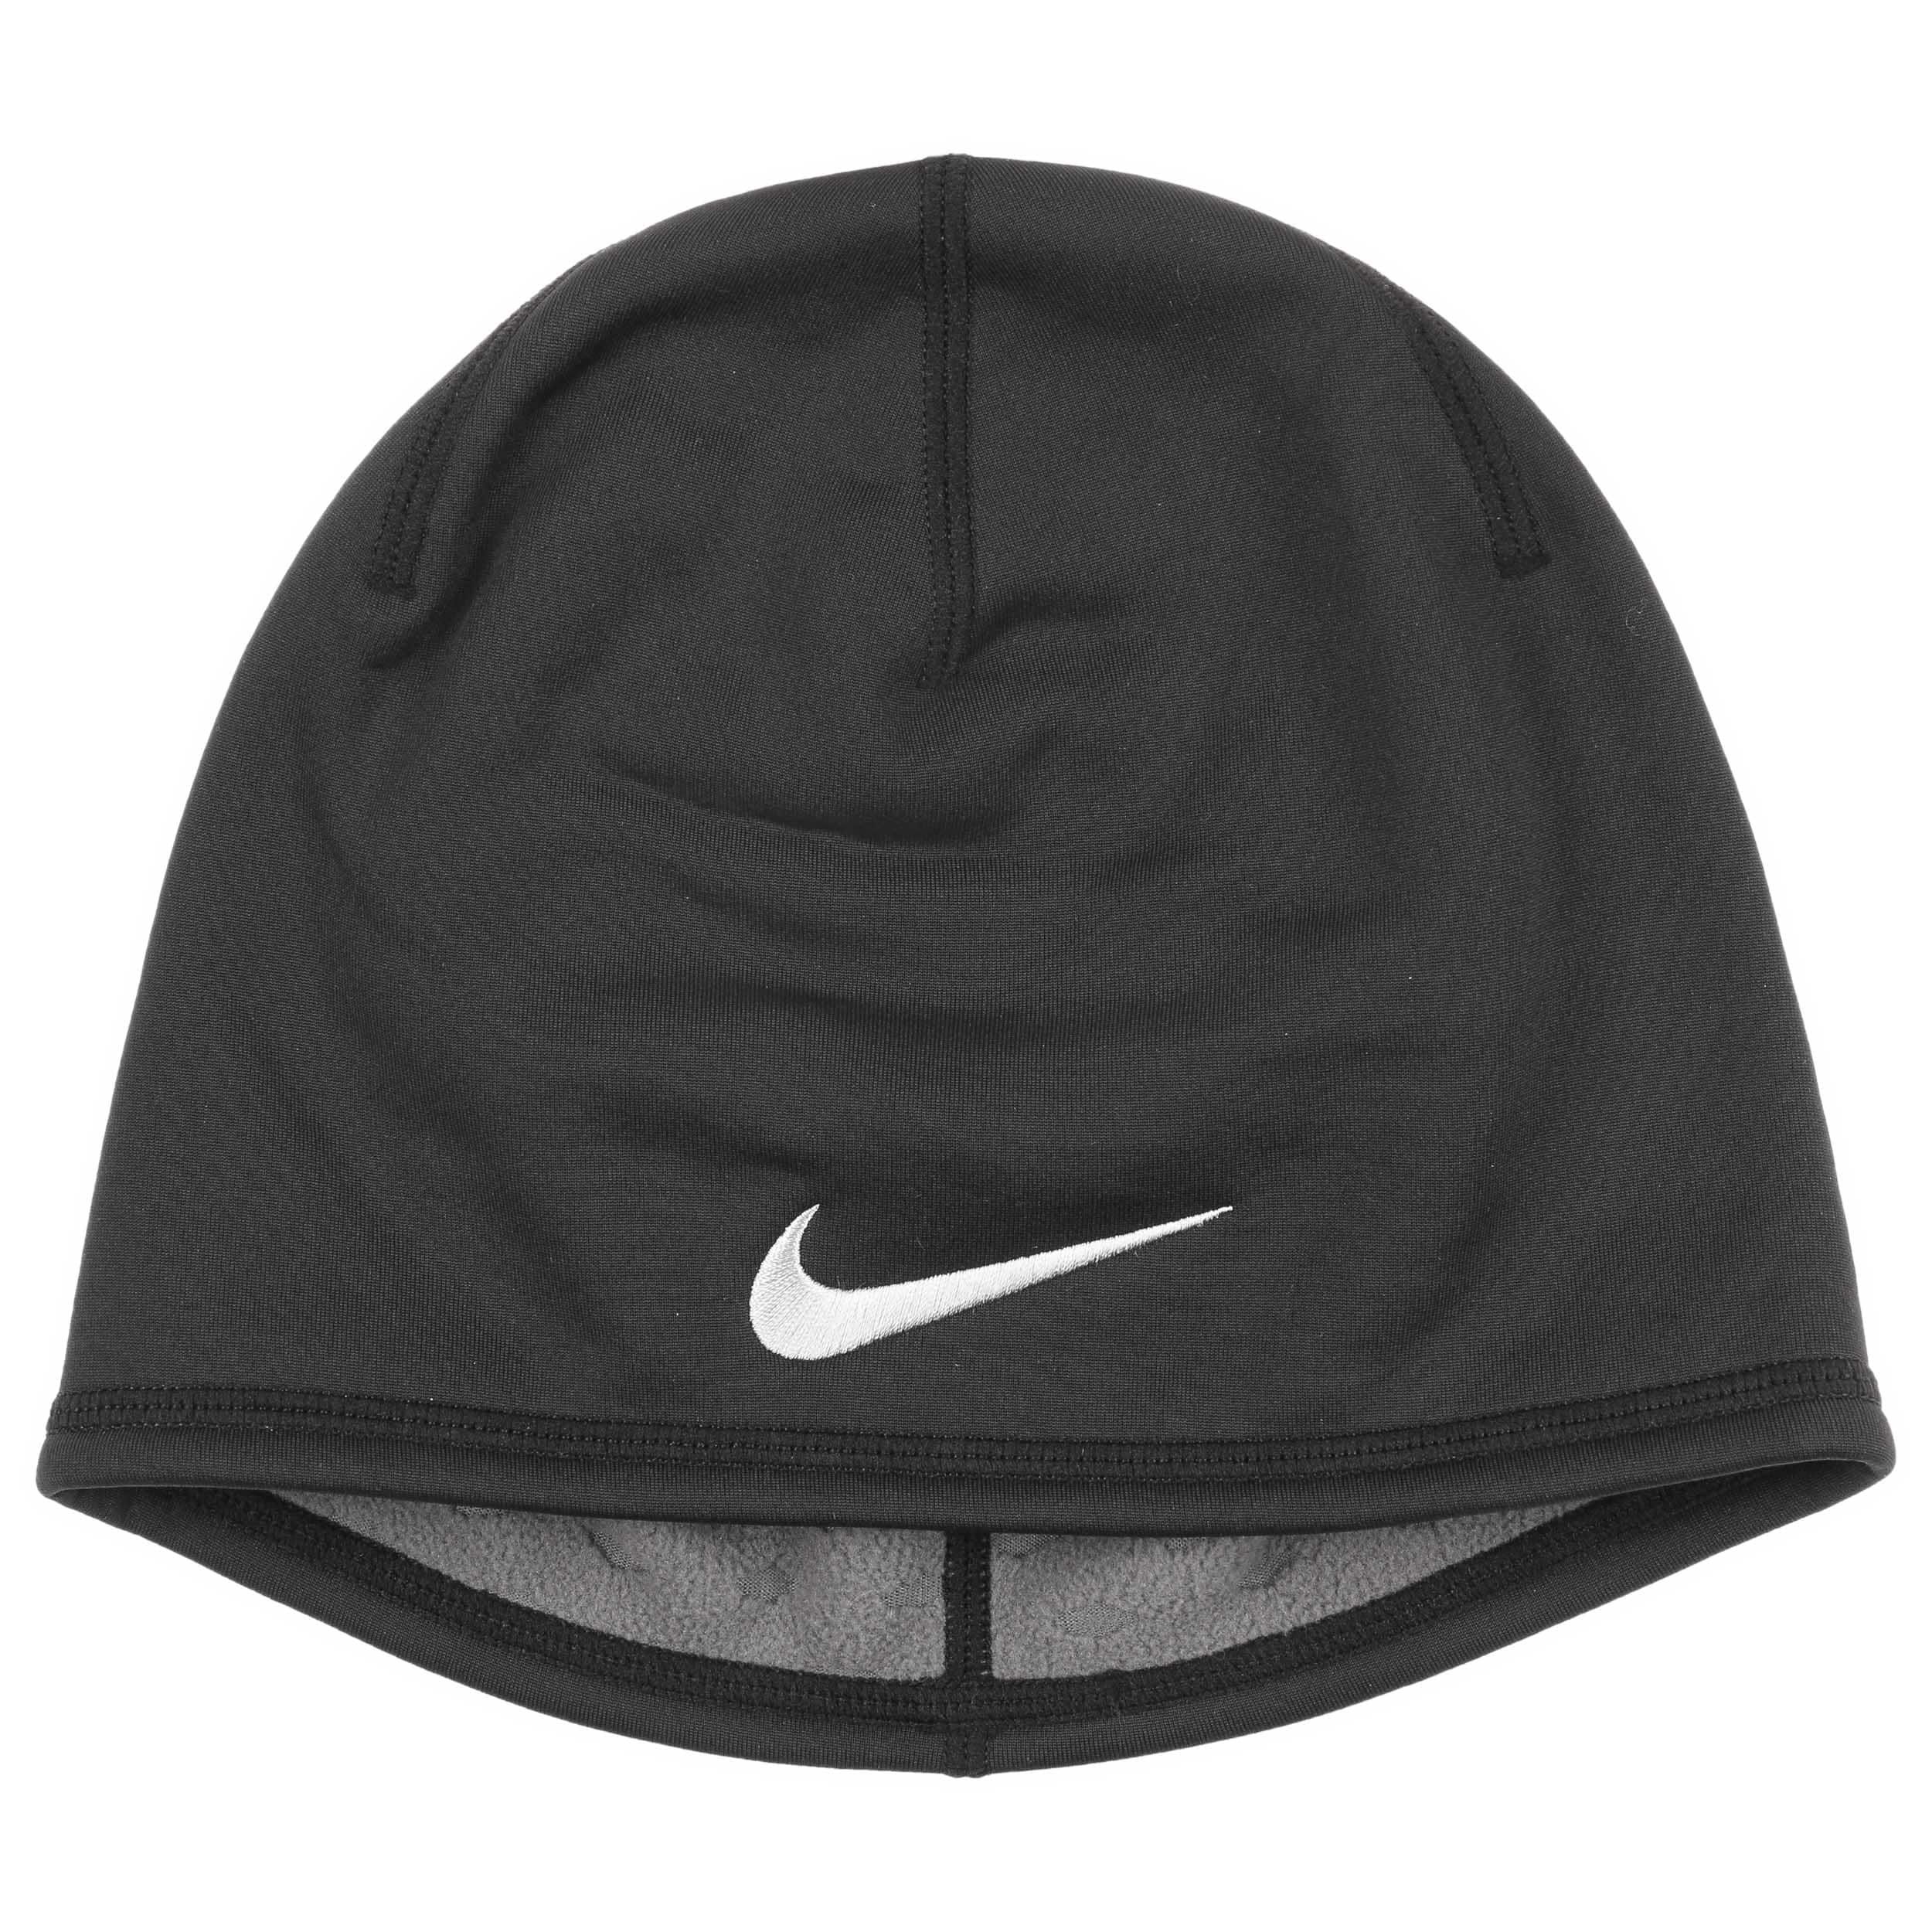 Tour Skully Beanie by Nike, GBP 25,95 --> Hats, caps ...